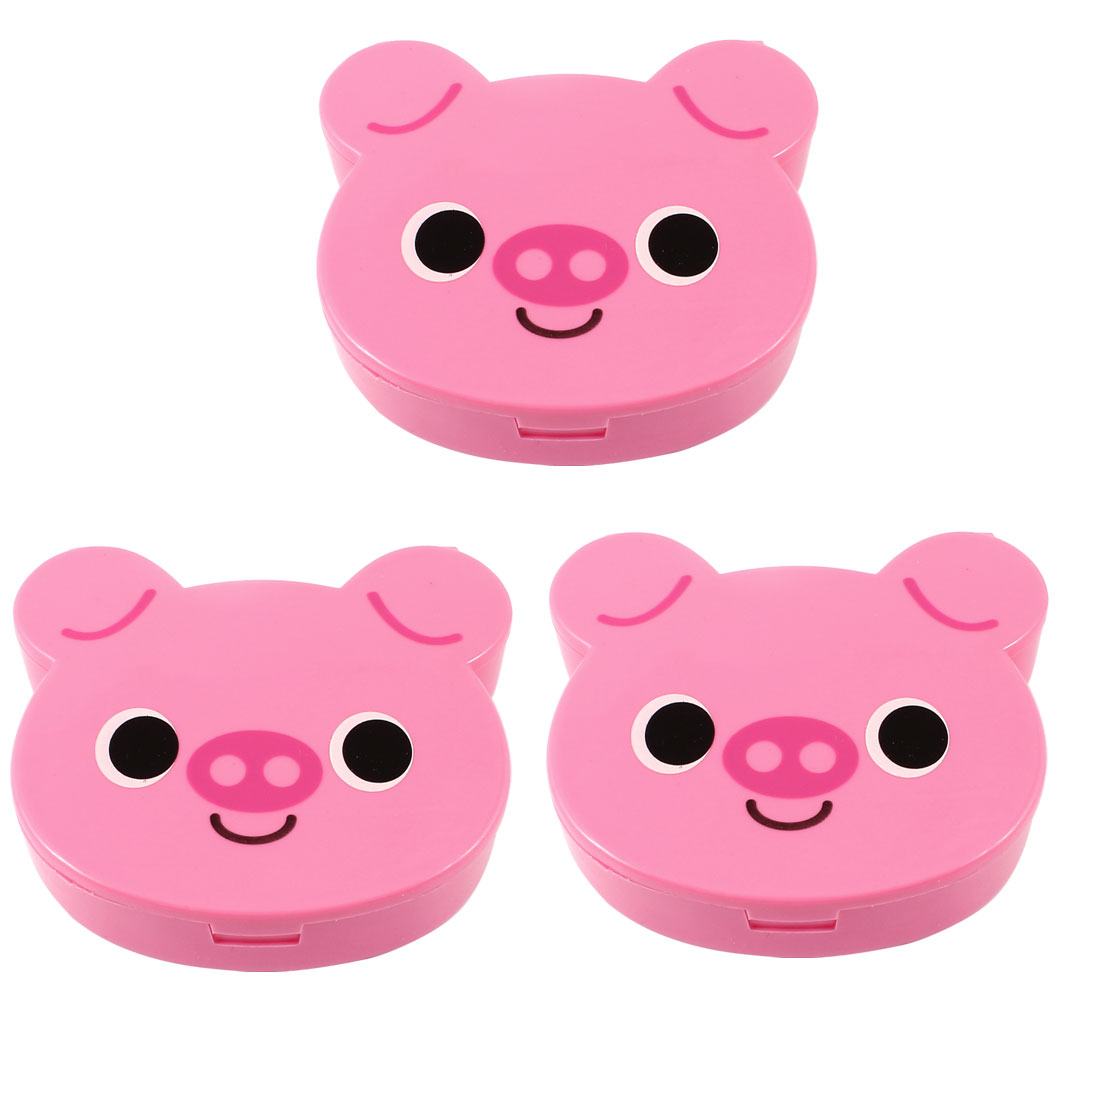 3pcs Pink Plastic Funny Pig Shape Coin Change Money Saving Holder Case Box Organizer for Kids